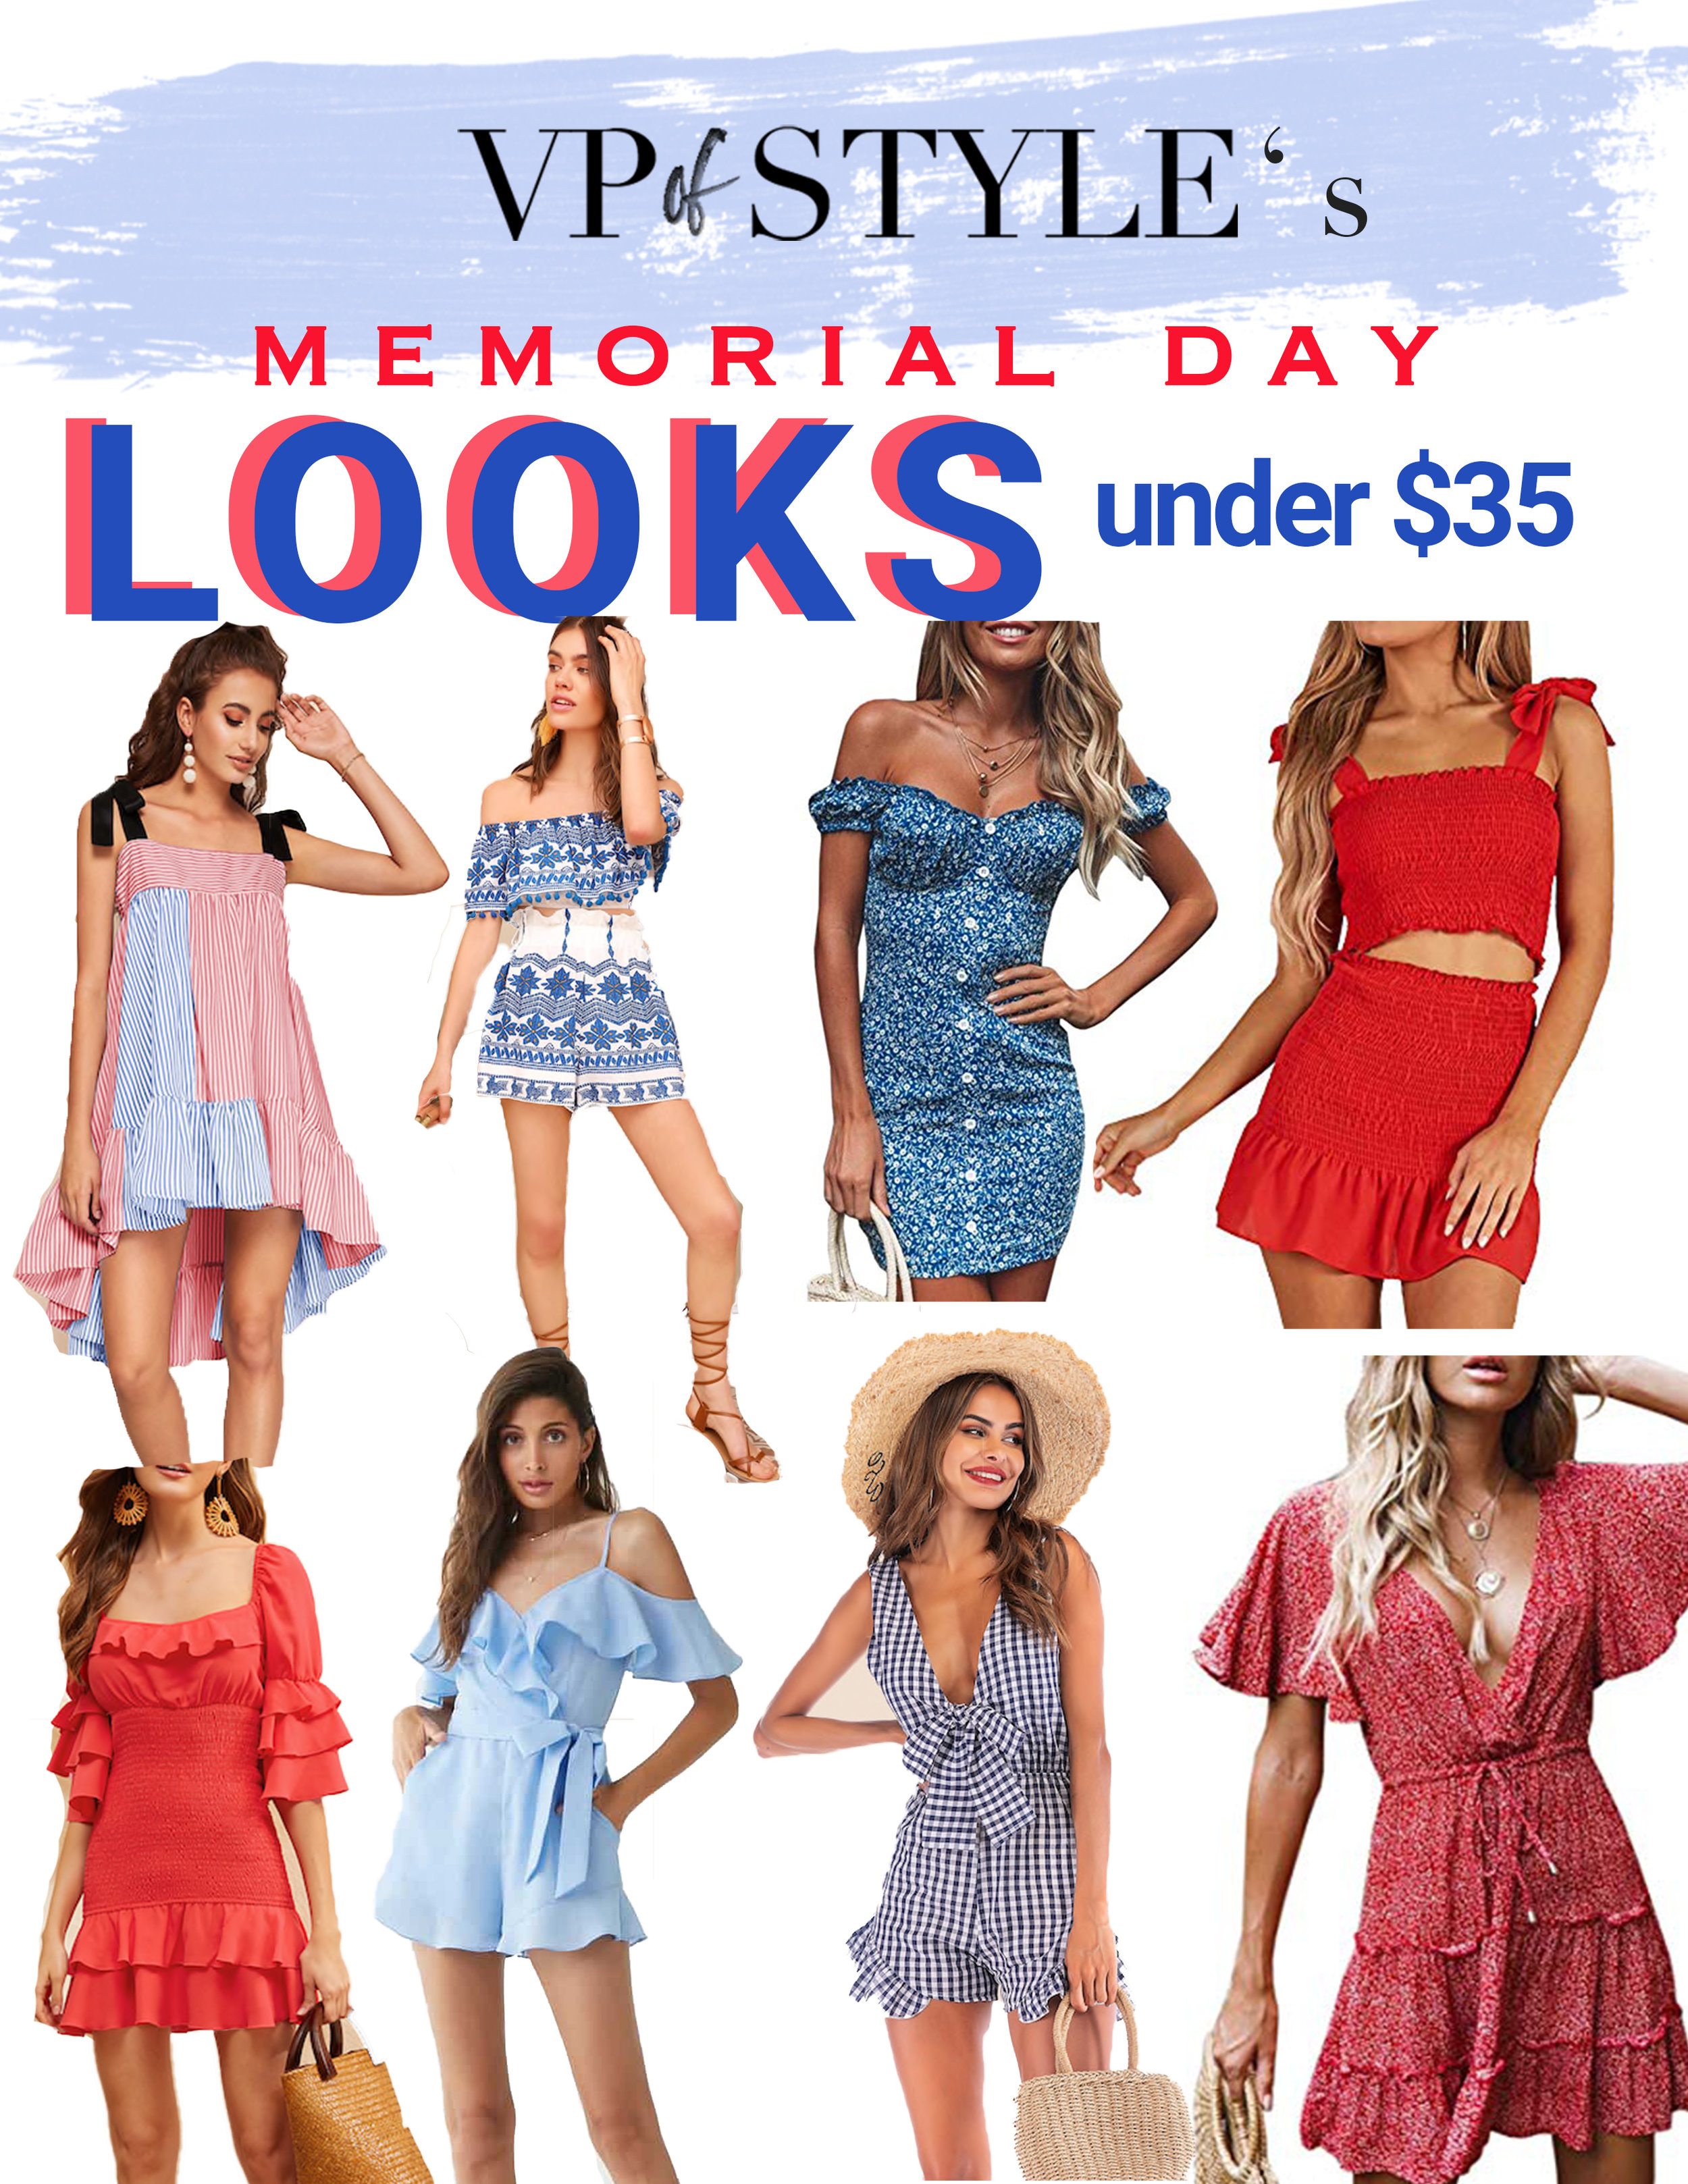 Memorial Day looks for the budget friendly